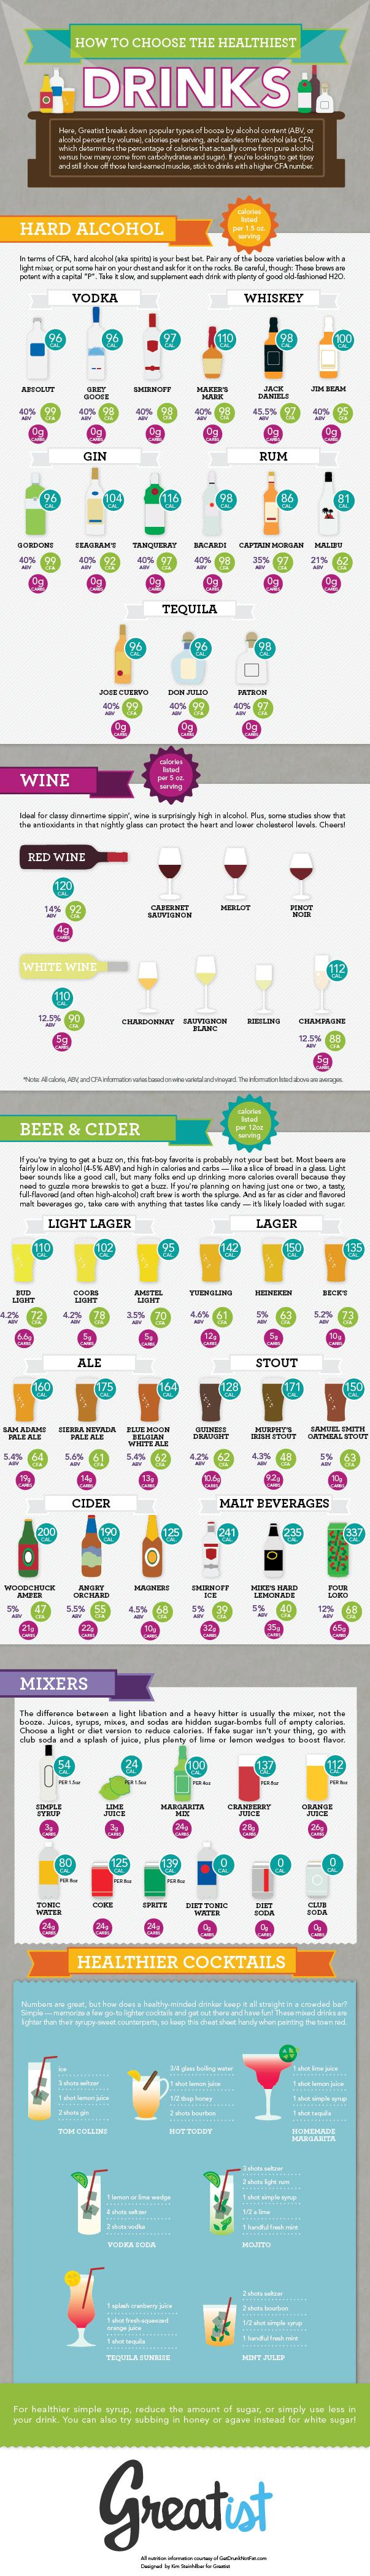 The Healthiest Beer, Wine, and Cocktails [INFOGRAPHIC]